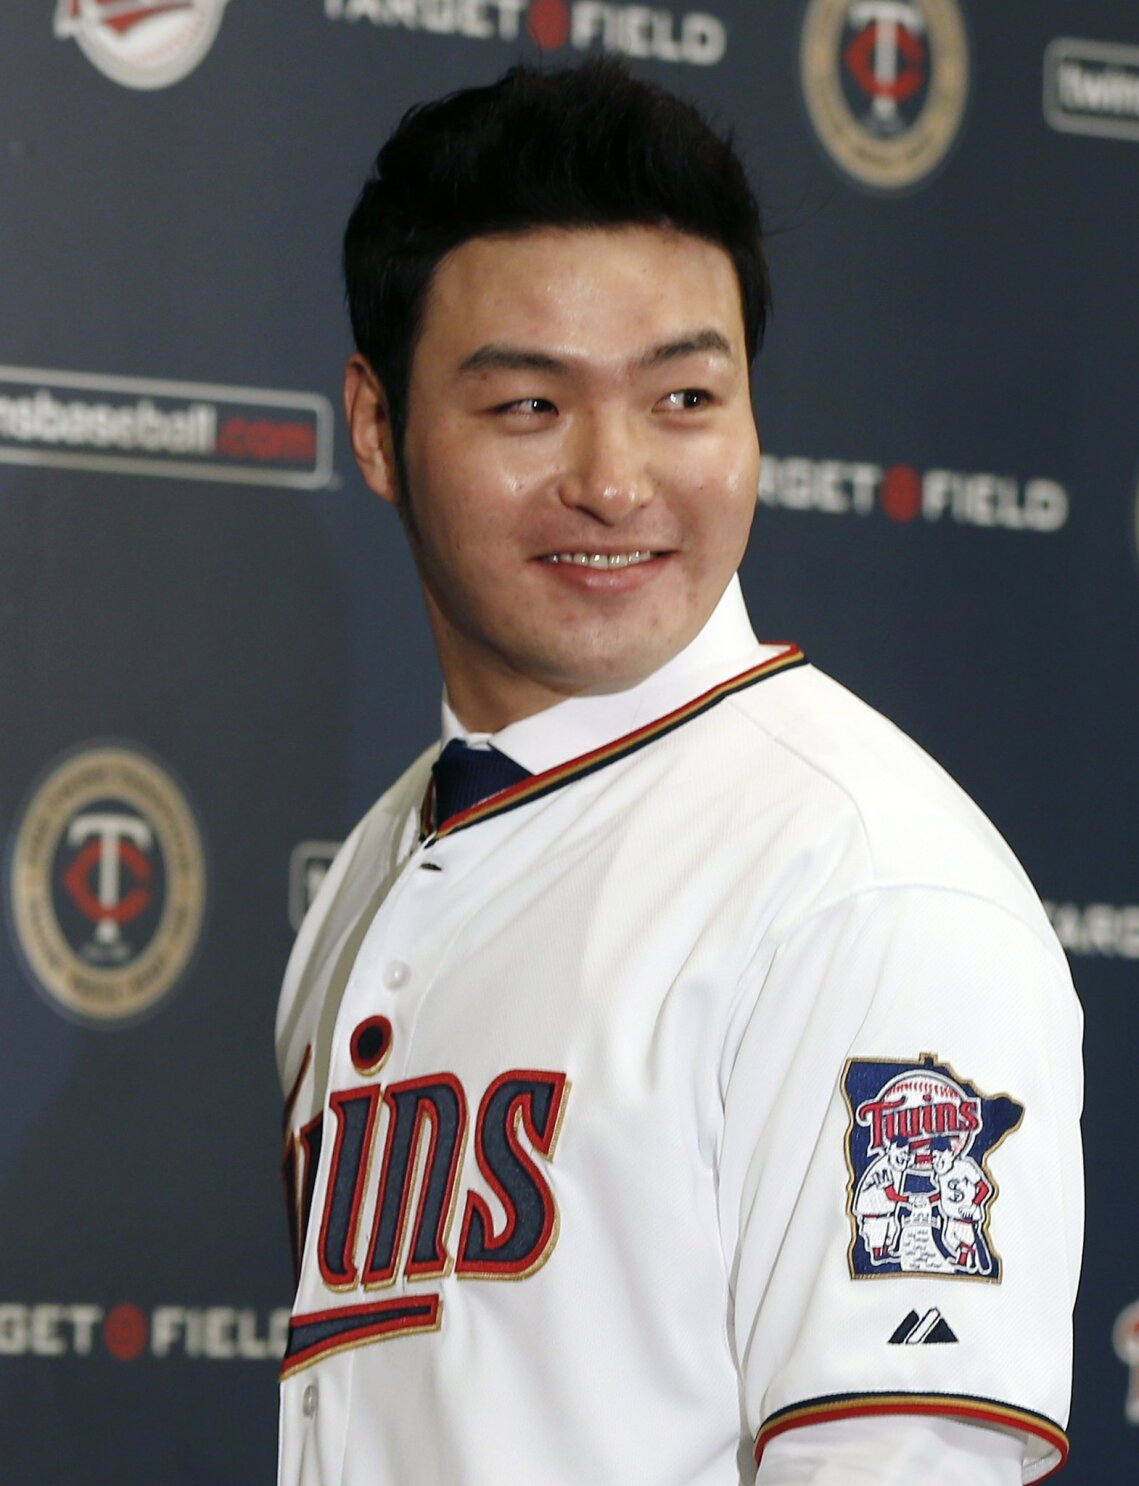 competitive price 14a3f bfb0e New Twins DH Byung Ho Park: 'Baseball is baseball' - The San ...